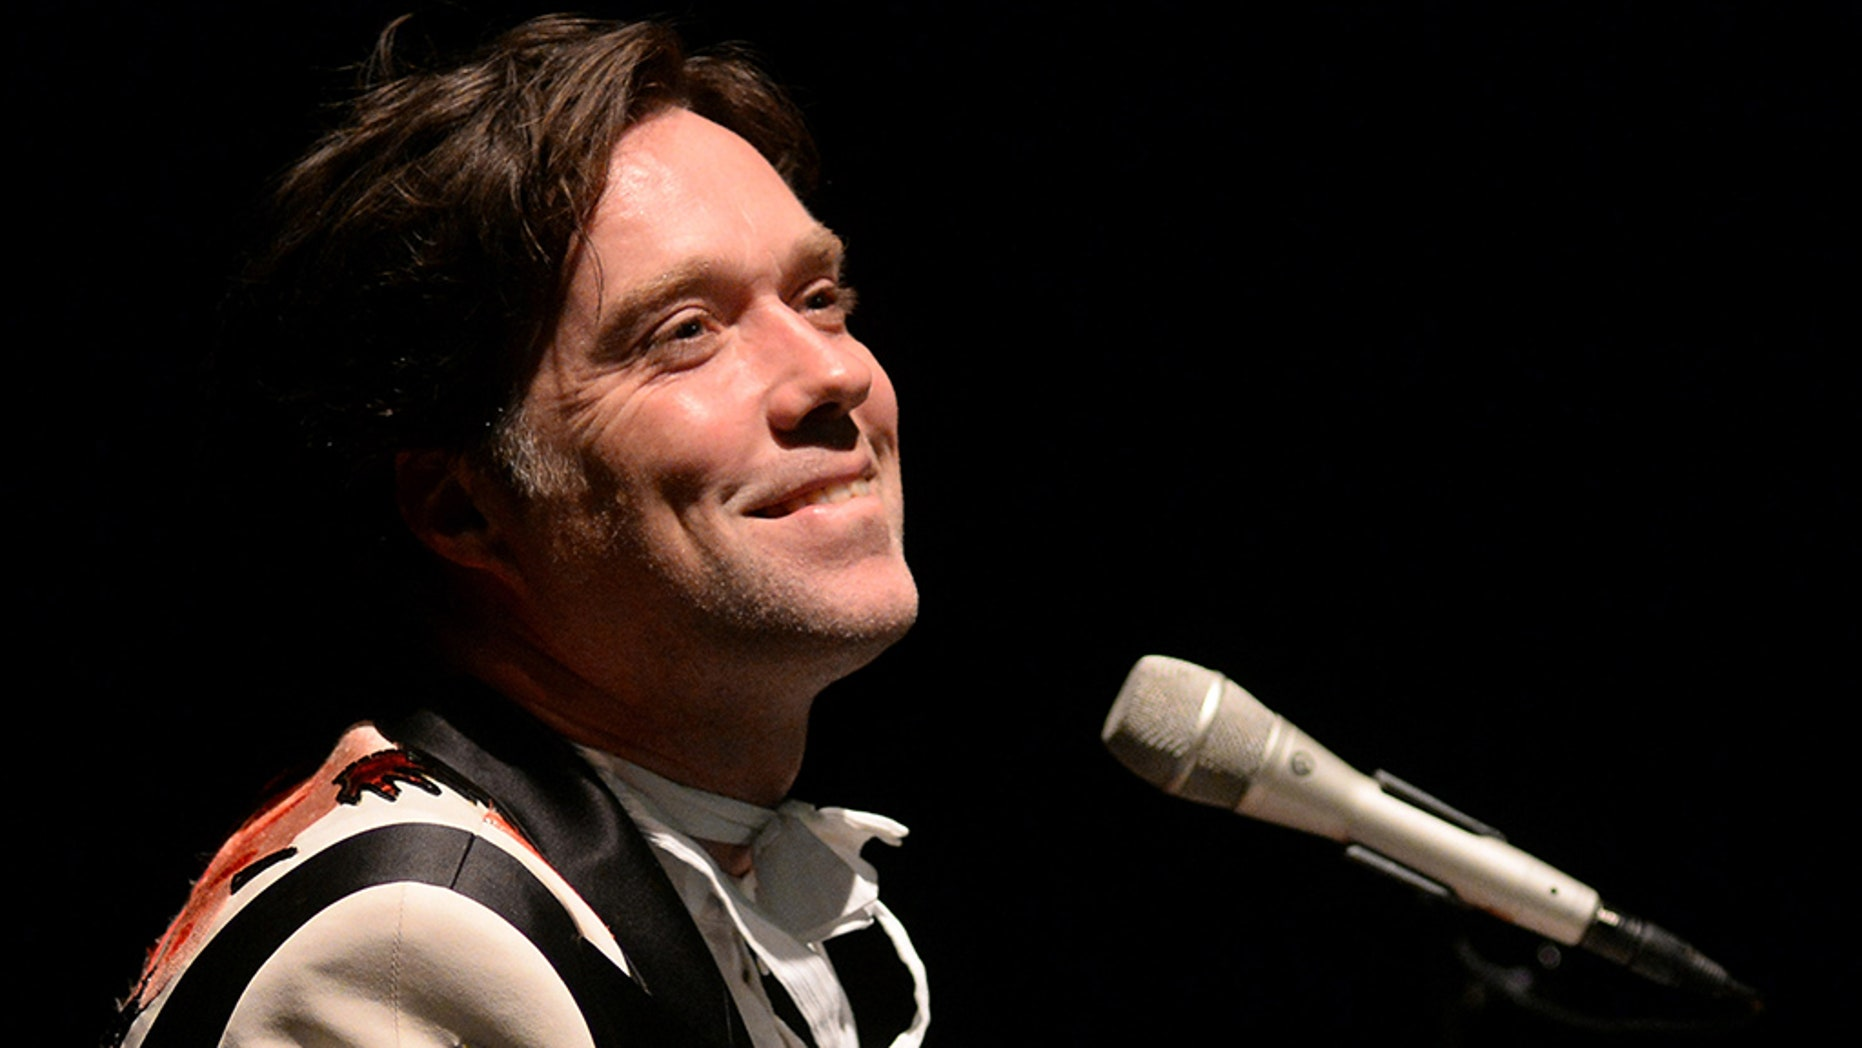 """Rufus Wainwright slams Trump in his new music video for """"Sword of Damocles,"""" released on Oct. 31, 2018."""